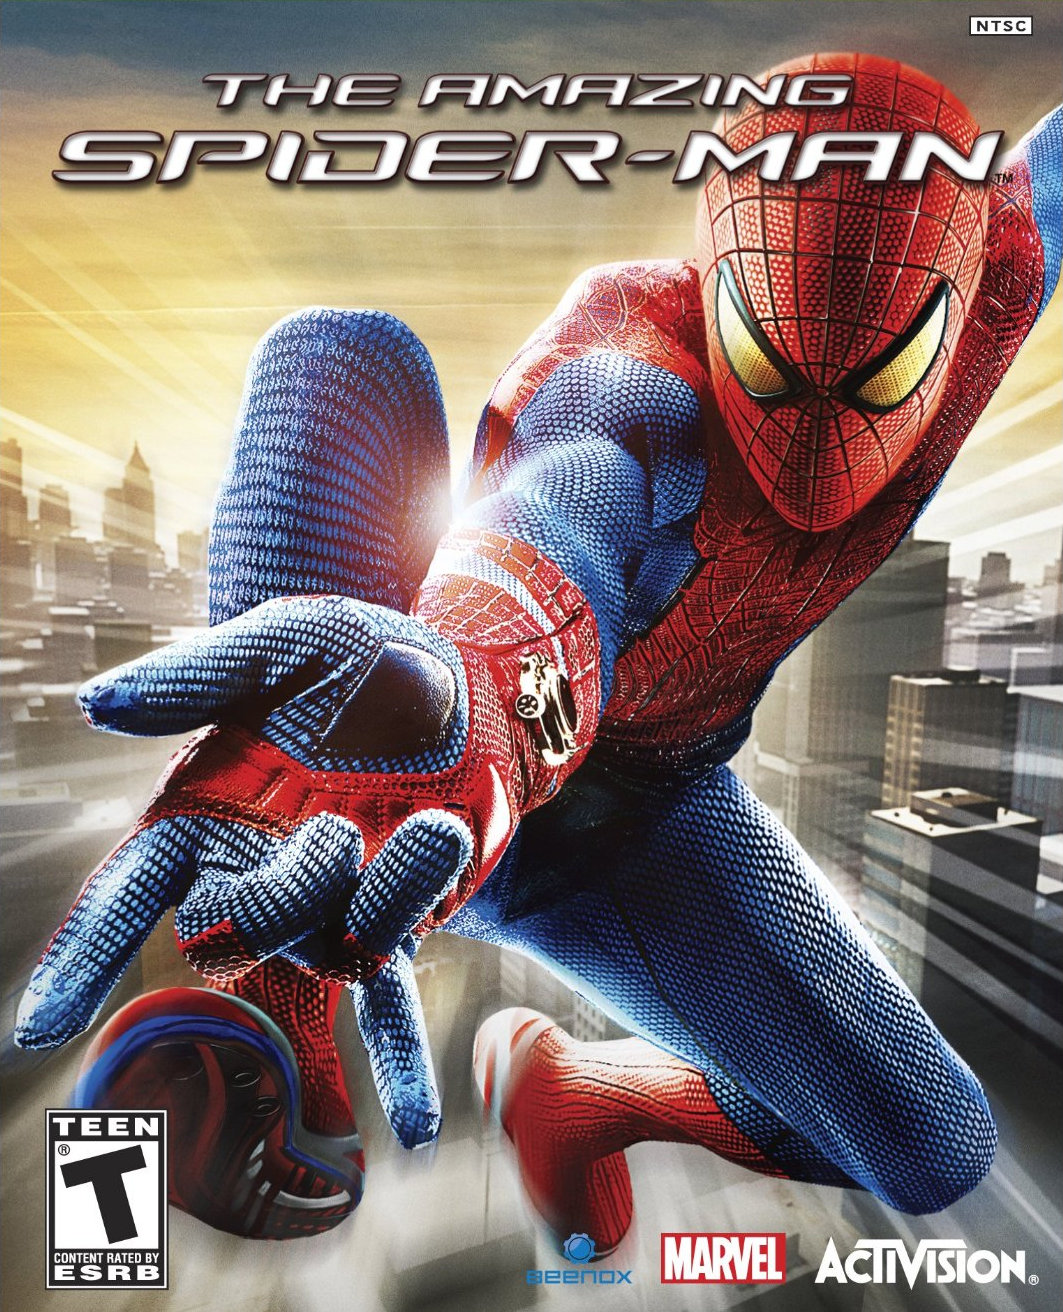 Xbox 360 Cheats - The Amazing Spider-Man 2 Wiki Guide - IGN